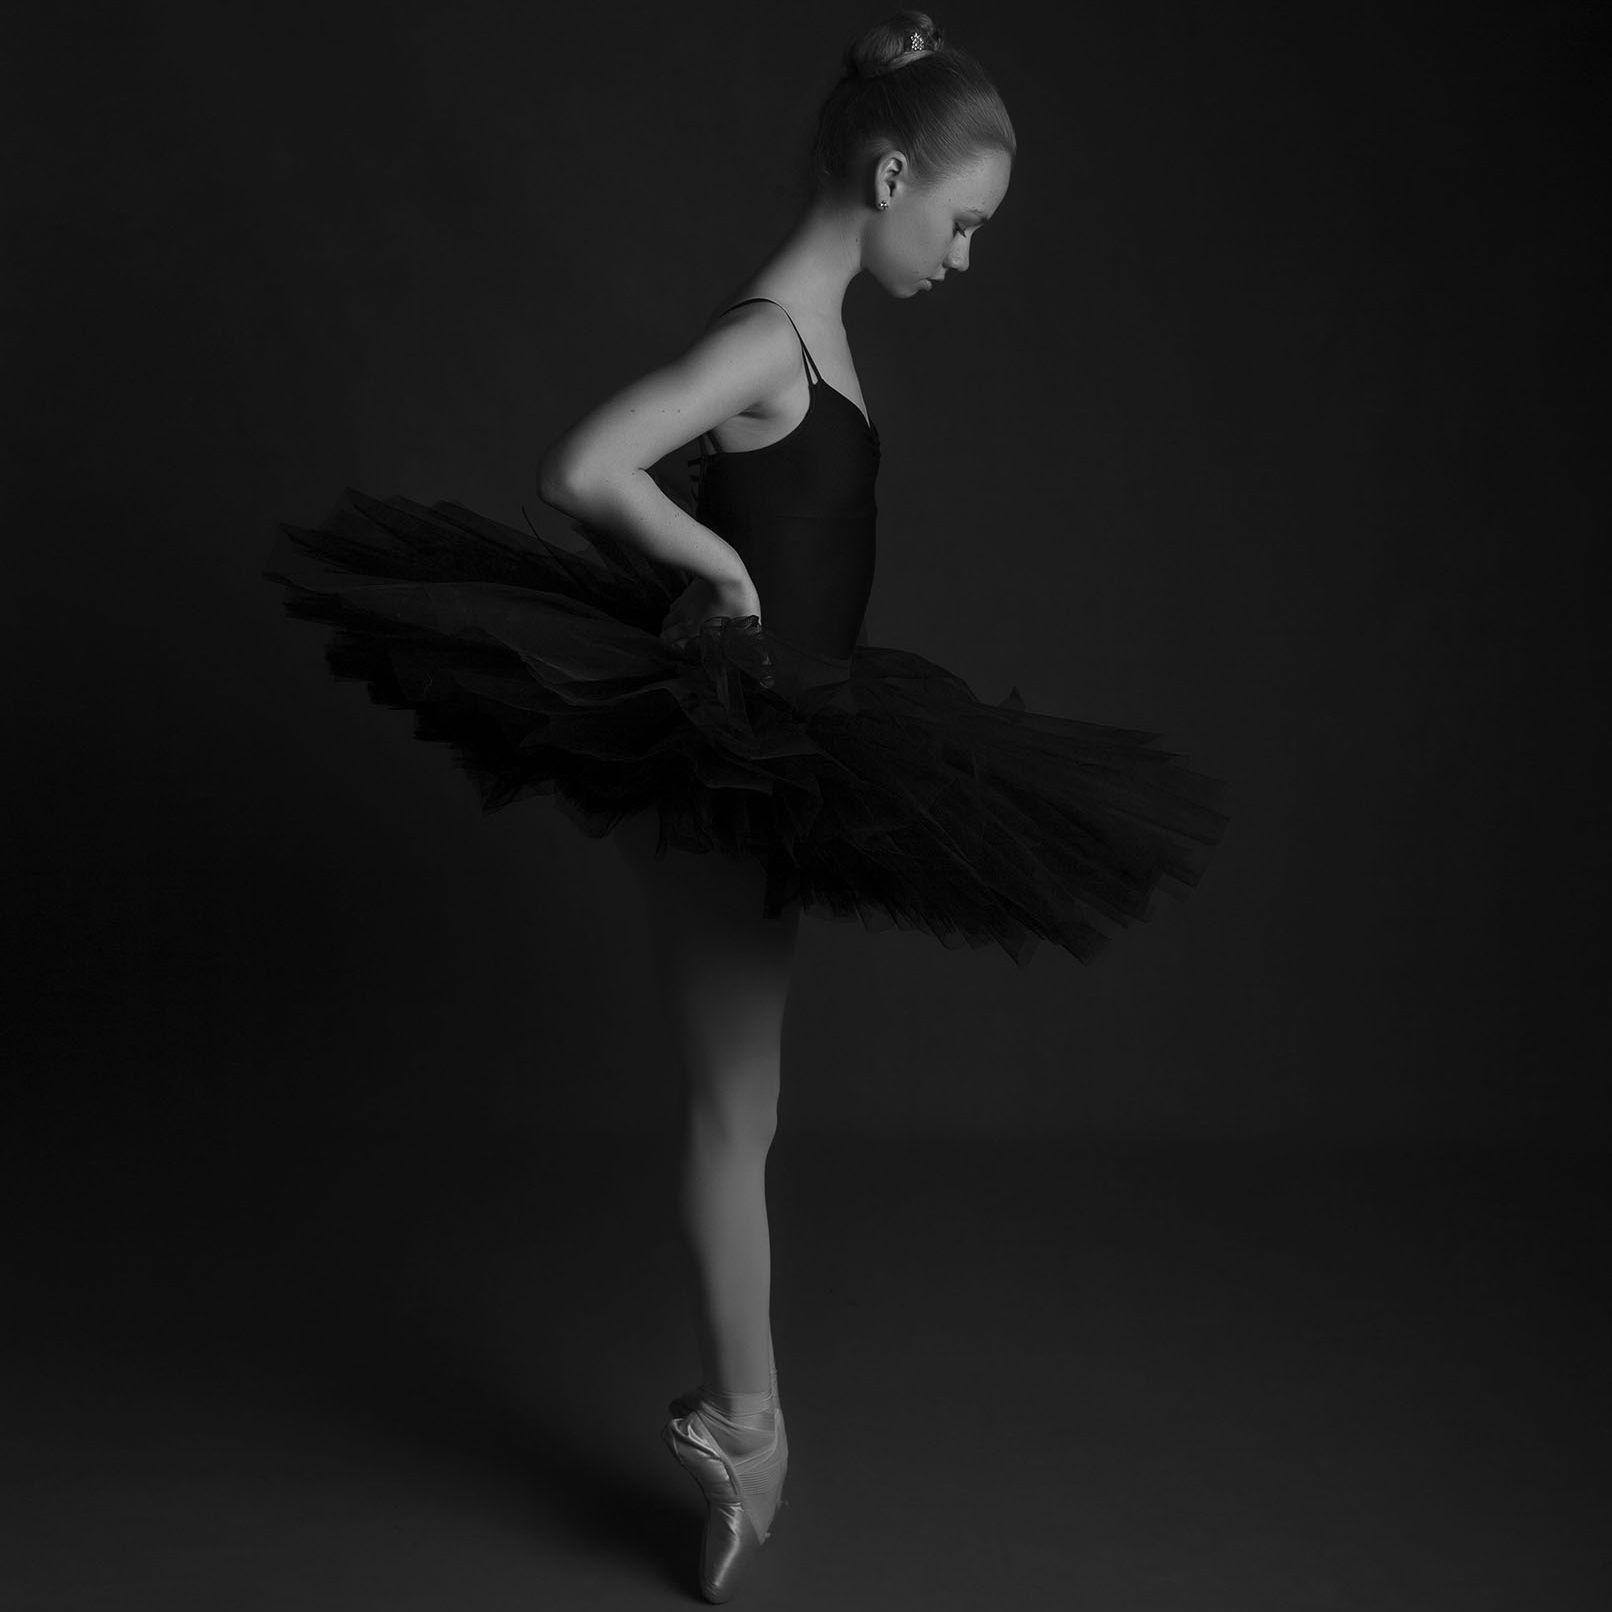 elizabethgphotography_kingslangley_hertfordshire_fineart_dance_photography_34.jpg